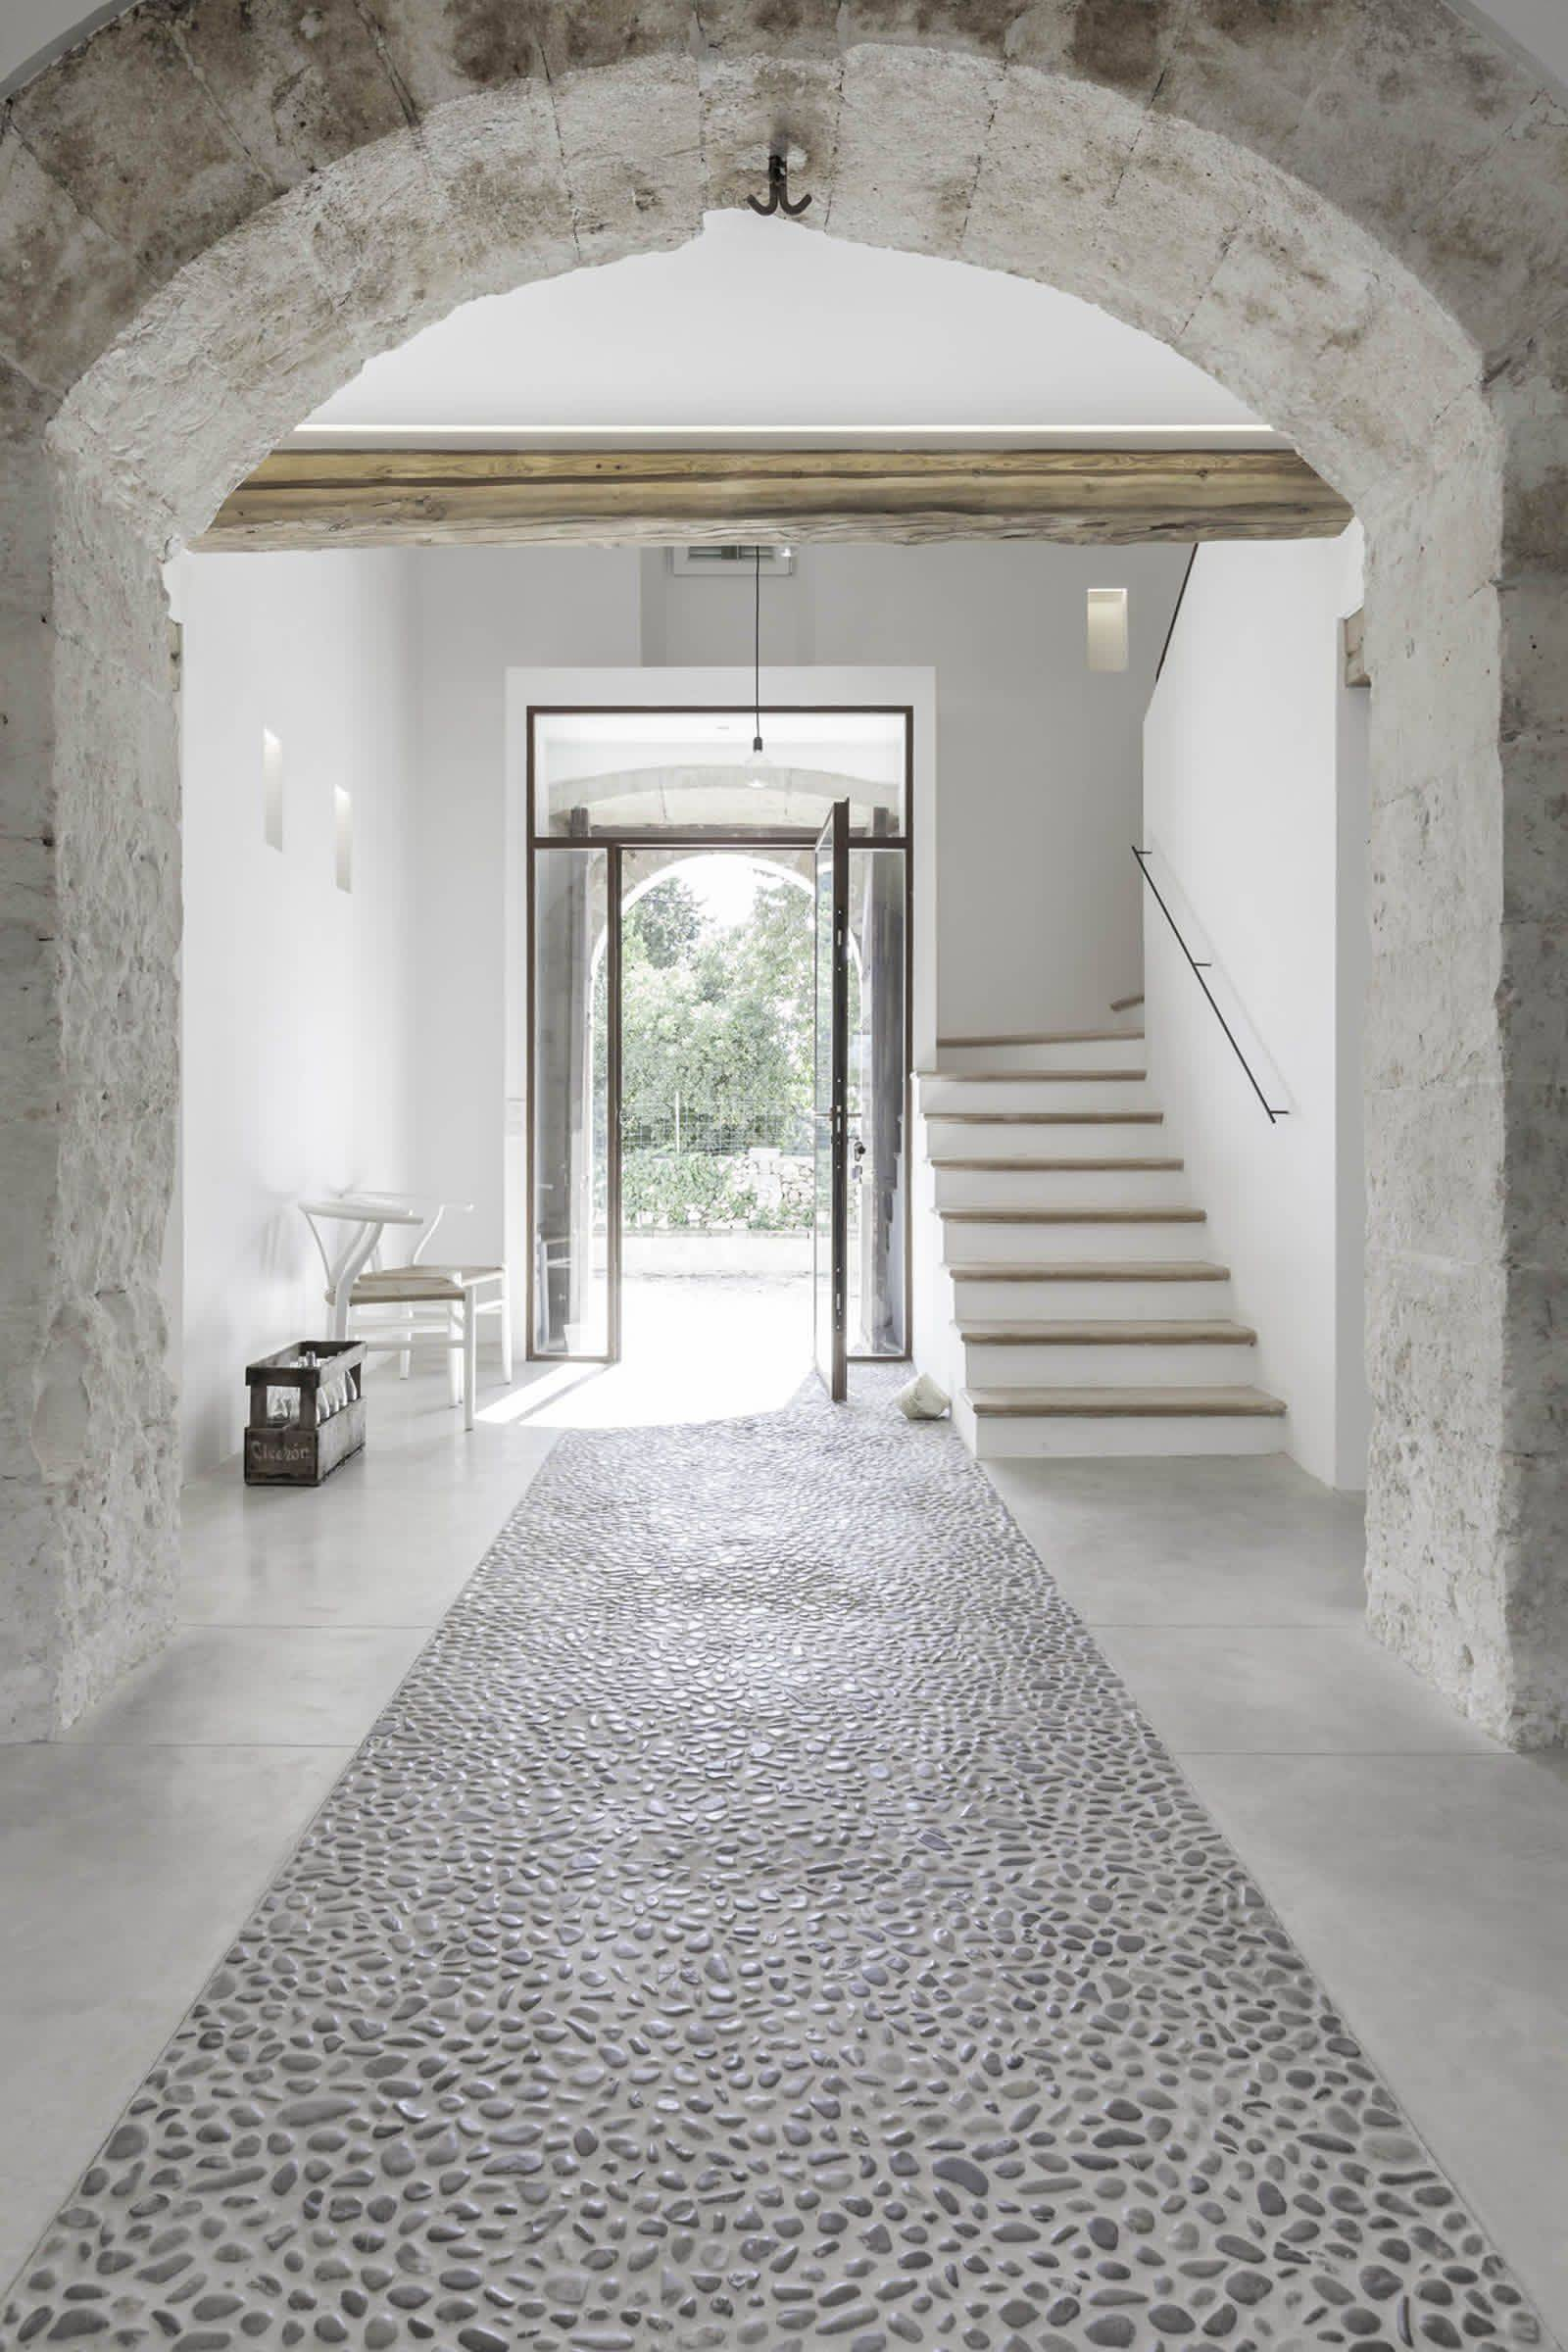 Entryway with pebbled stone floor